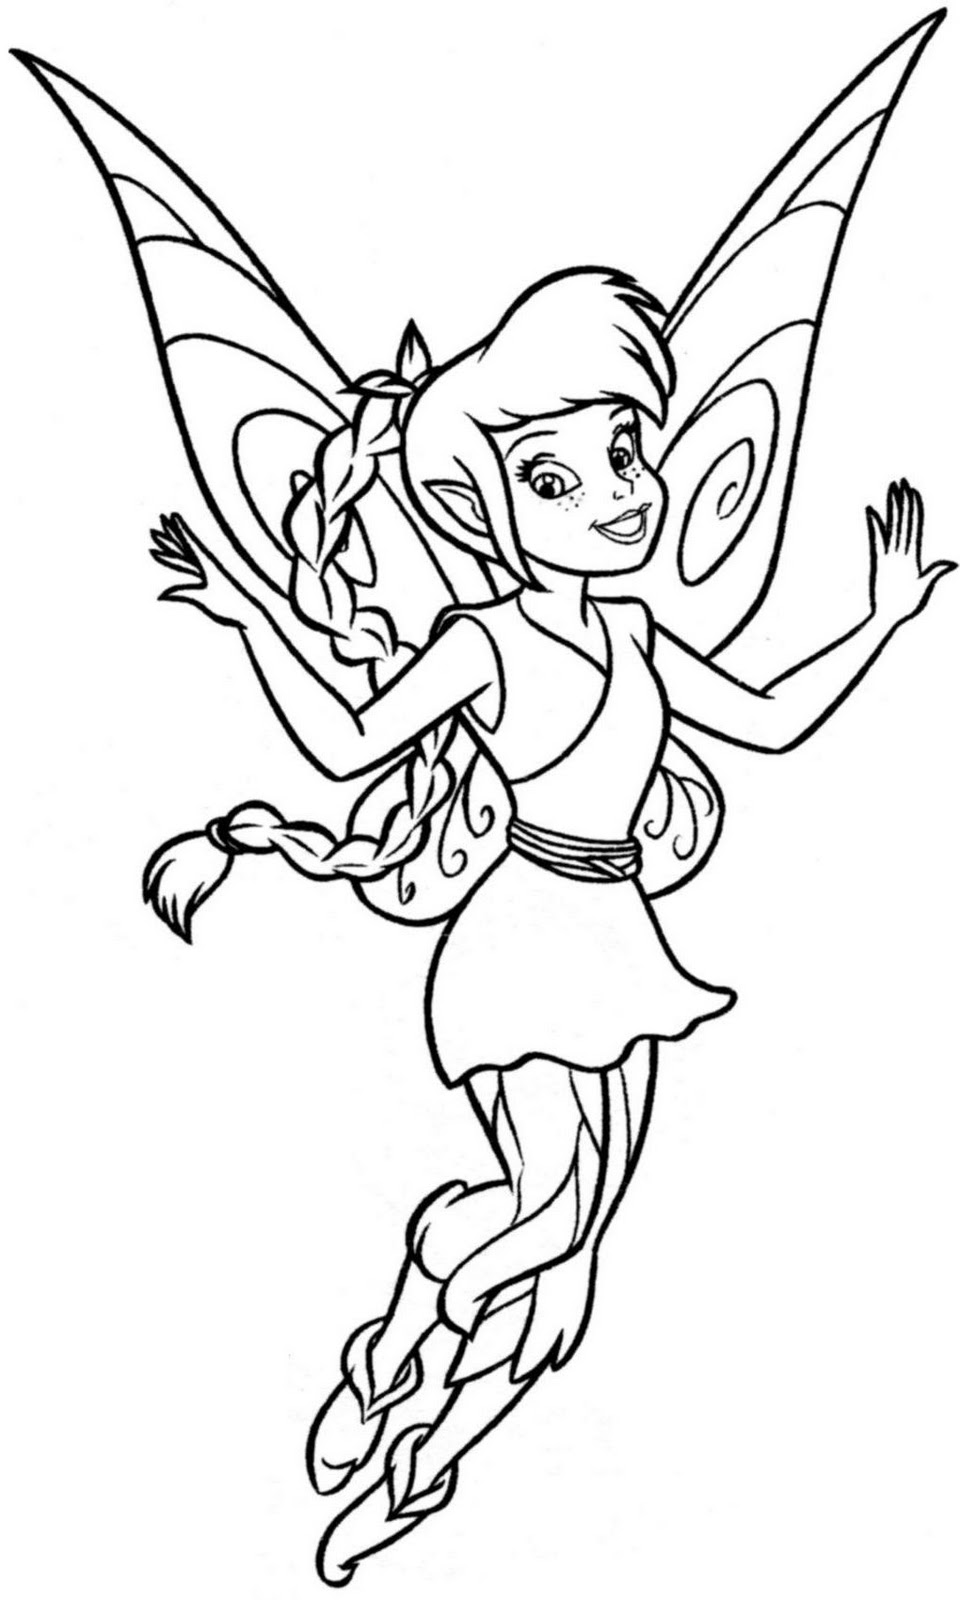 fawn fairy coloring pages fawn fairy coloring pages coloring pages to download and fawn pages coloring fairy